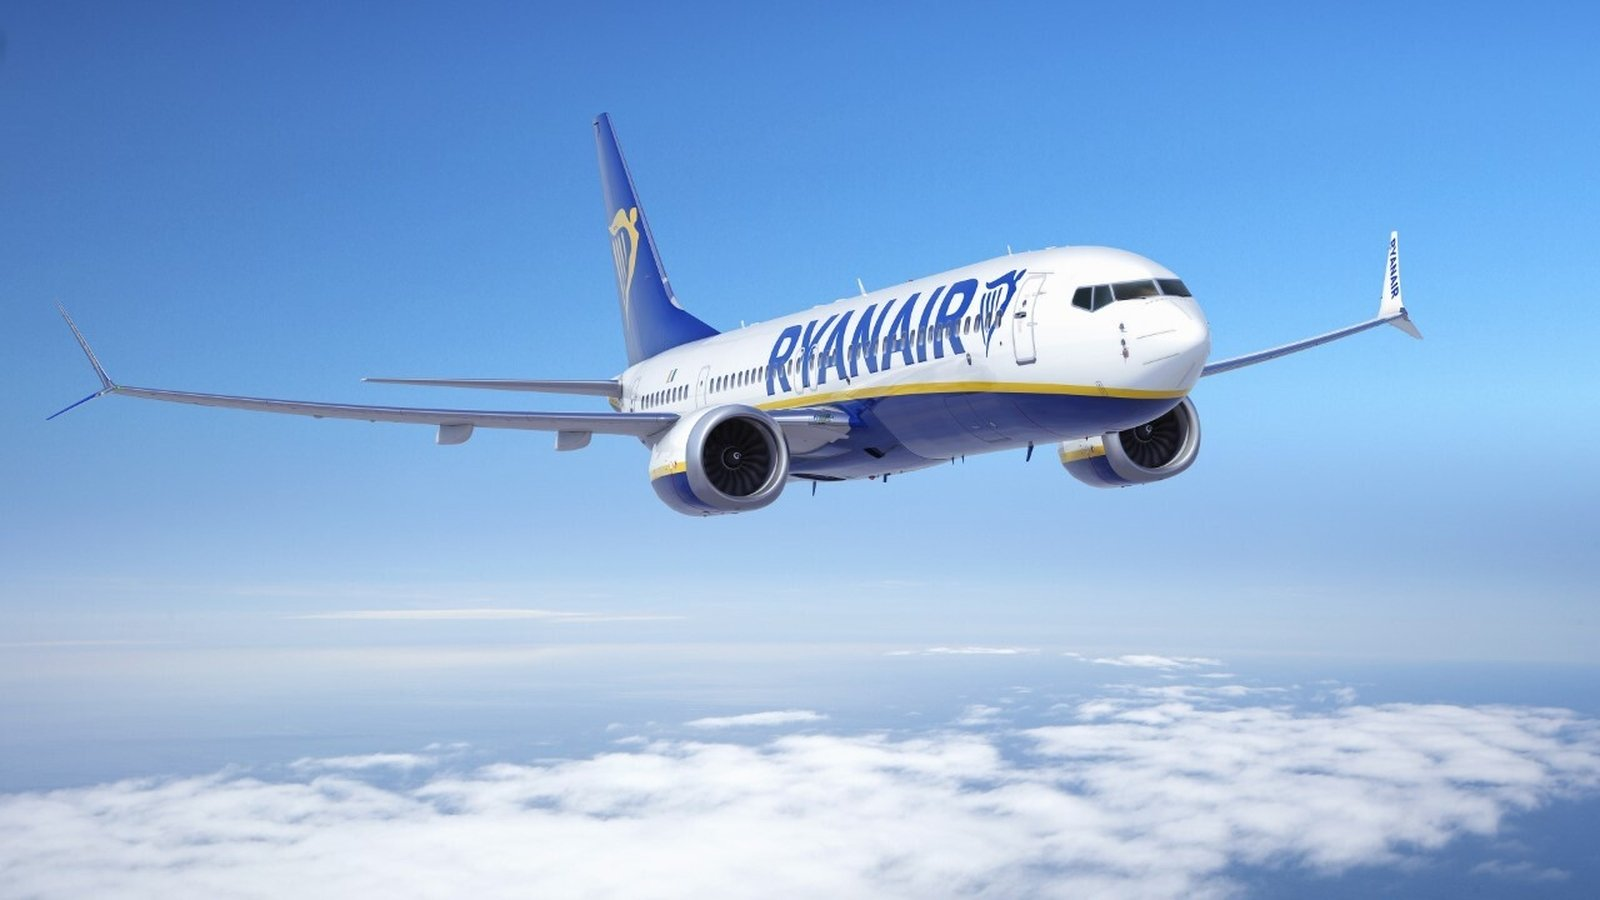 Ryanair placed order for 75 airplanes Boeing 737 MAX